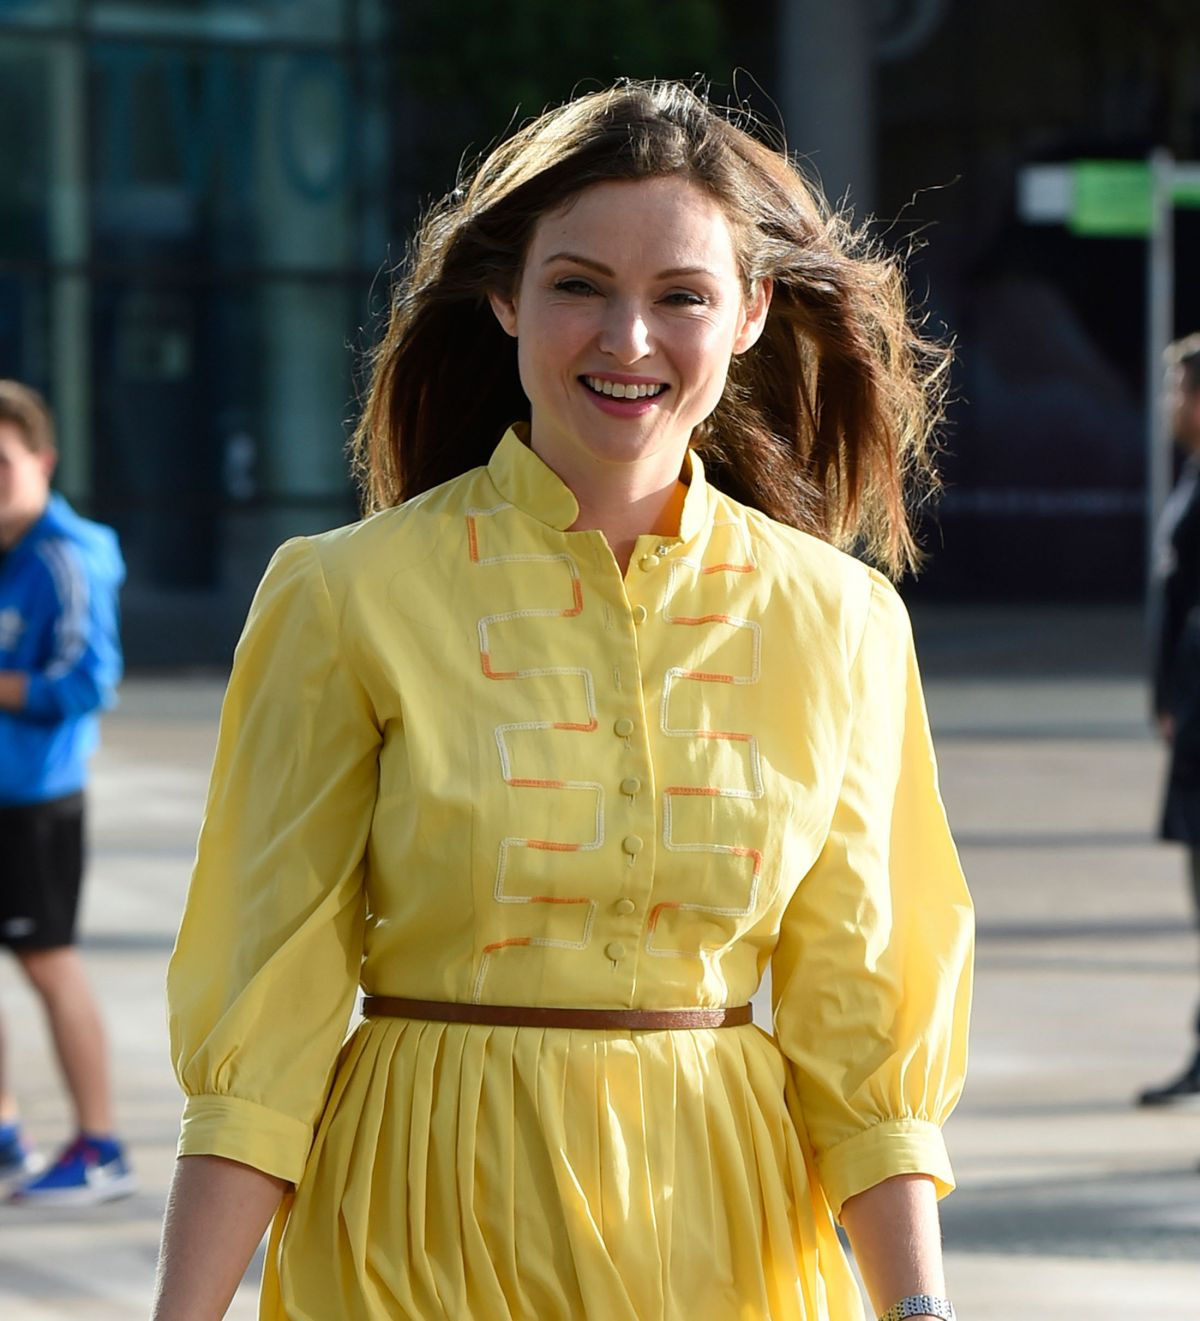 Sophie Ellis Bextor at BBC Breakfast Studios in Manchester 2016